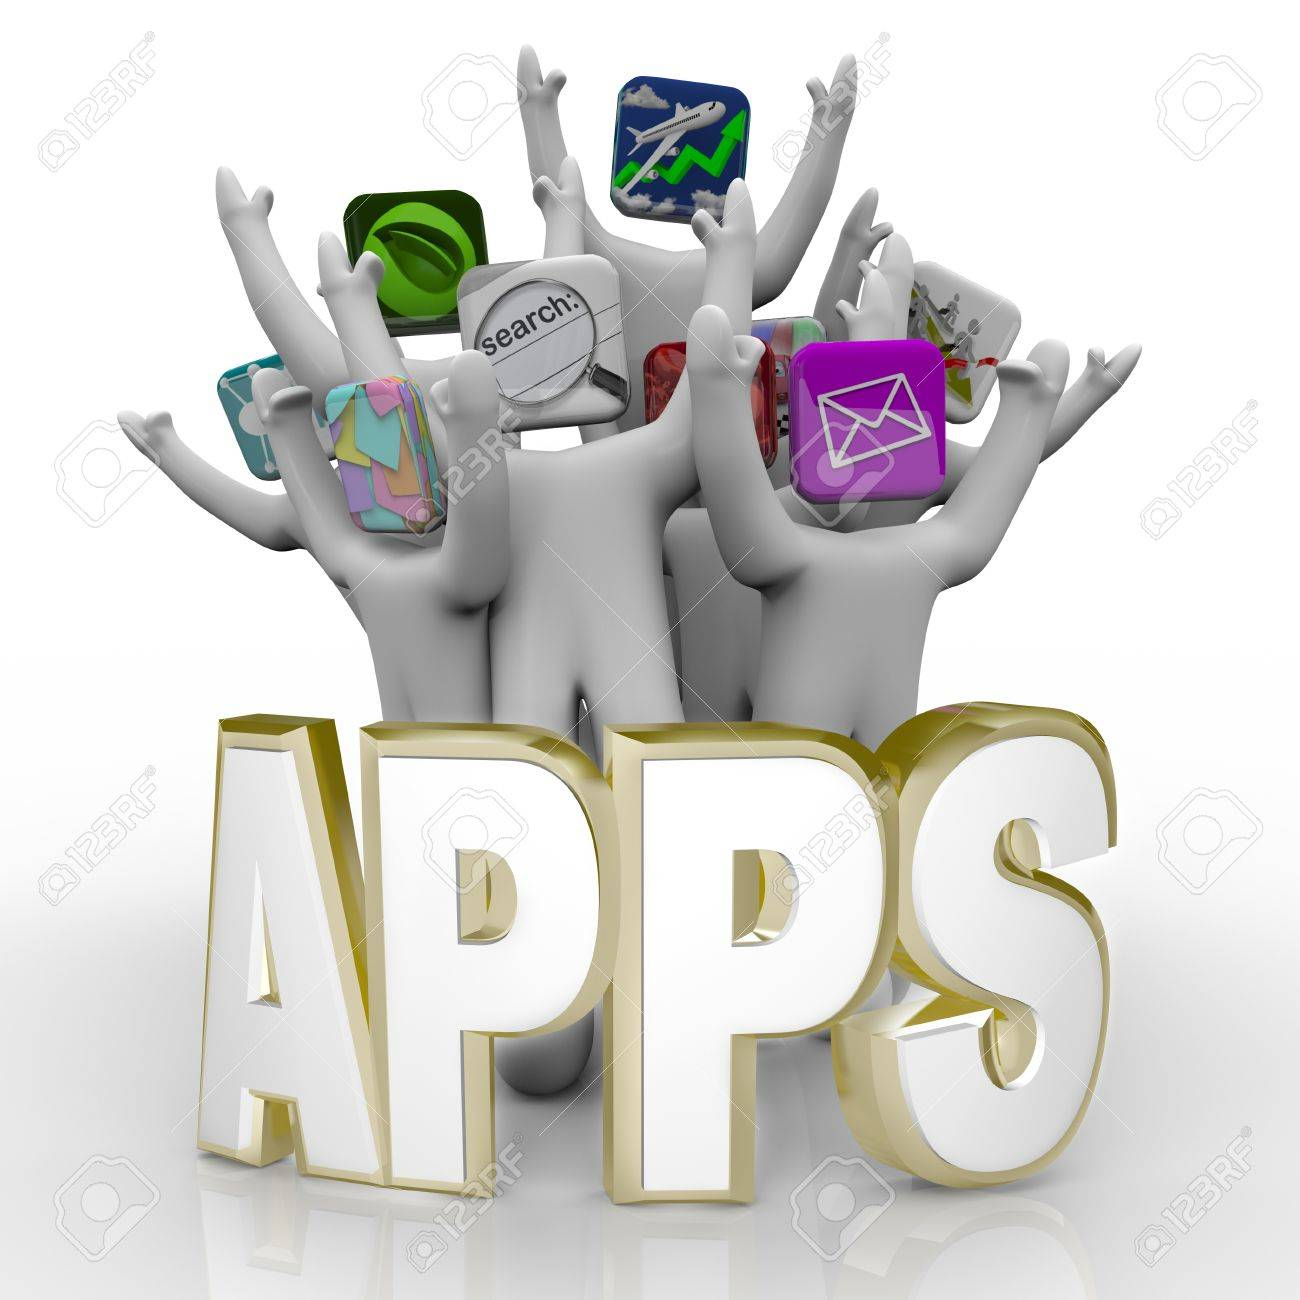 Several people with application icons as heads stand cheering behind the word Apps Stock Photo - 8610744